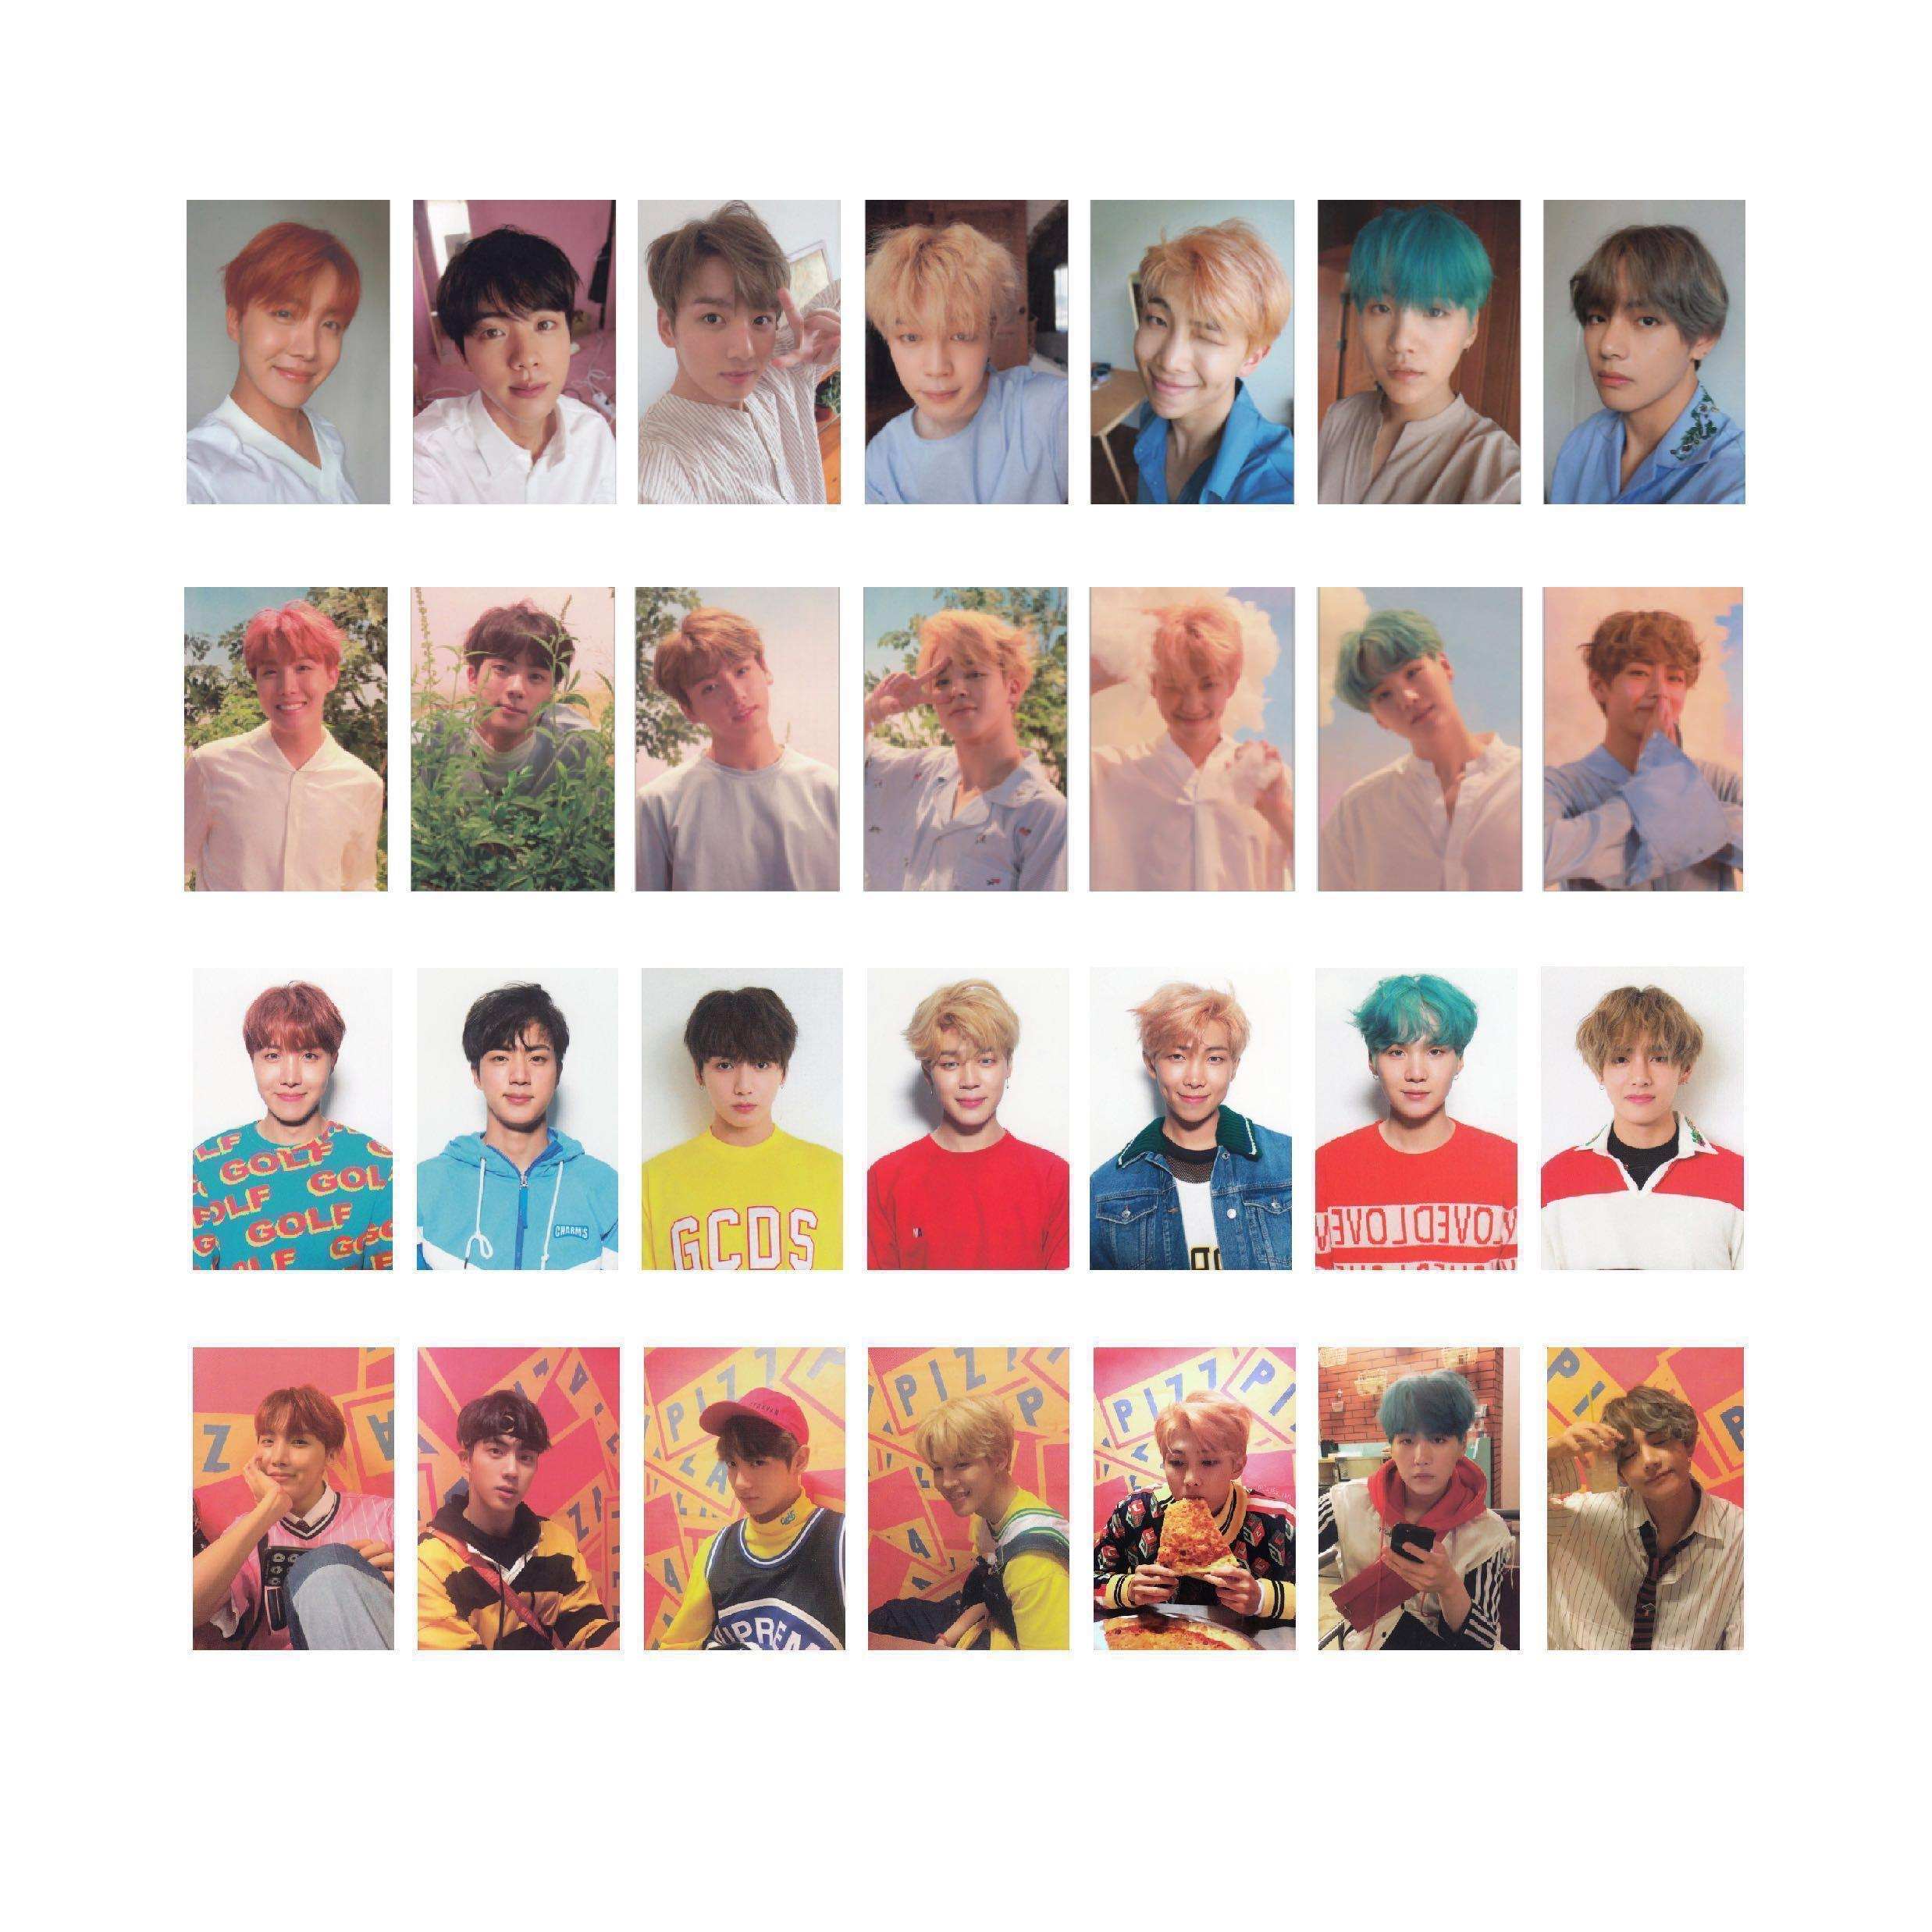 official bts love yourself her photocards 1545105244 6c214c56 progressive